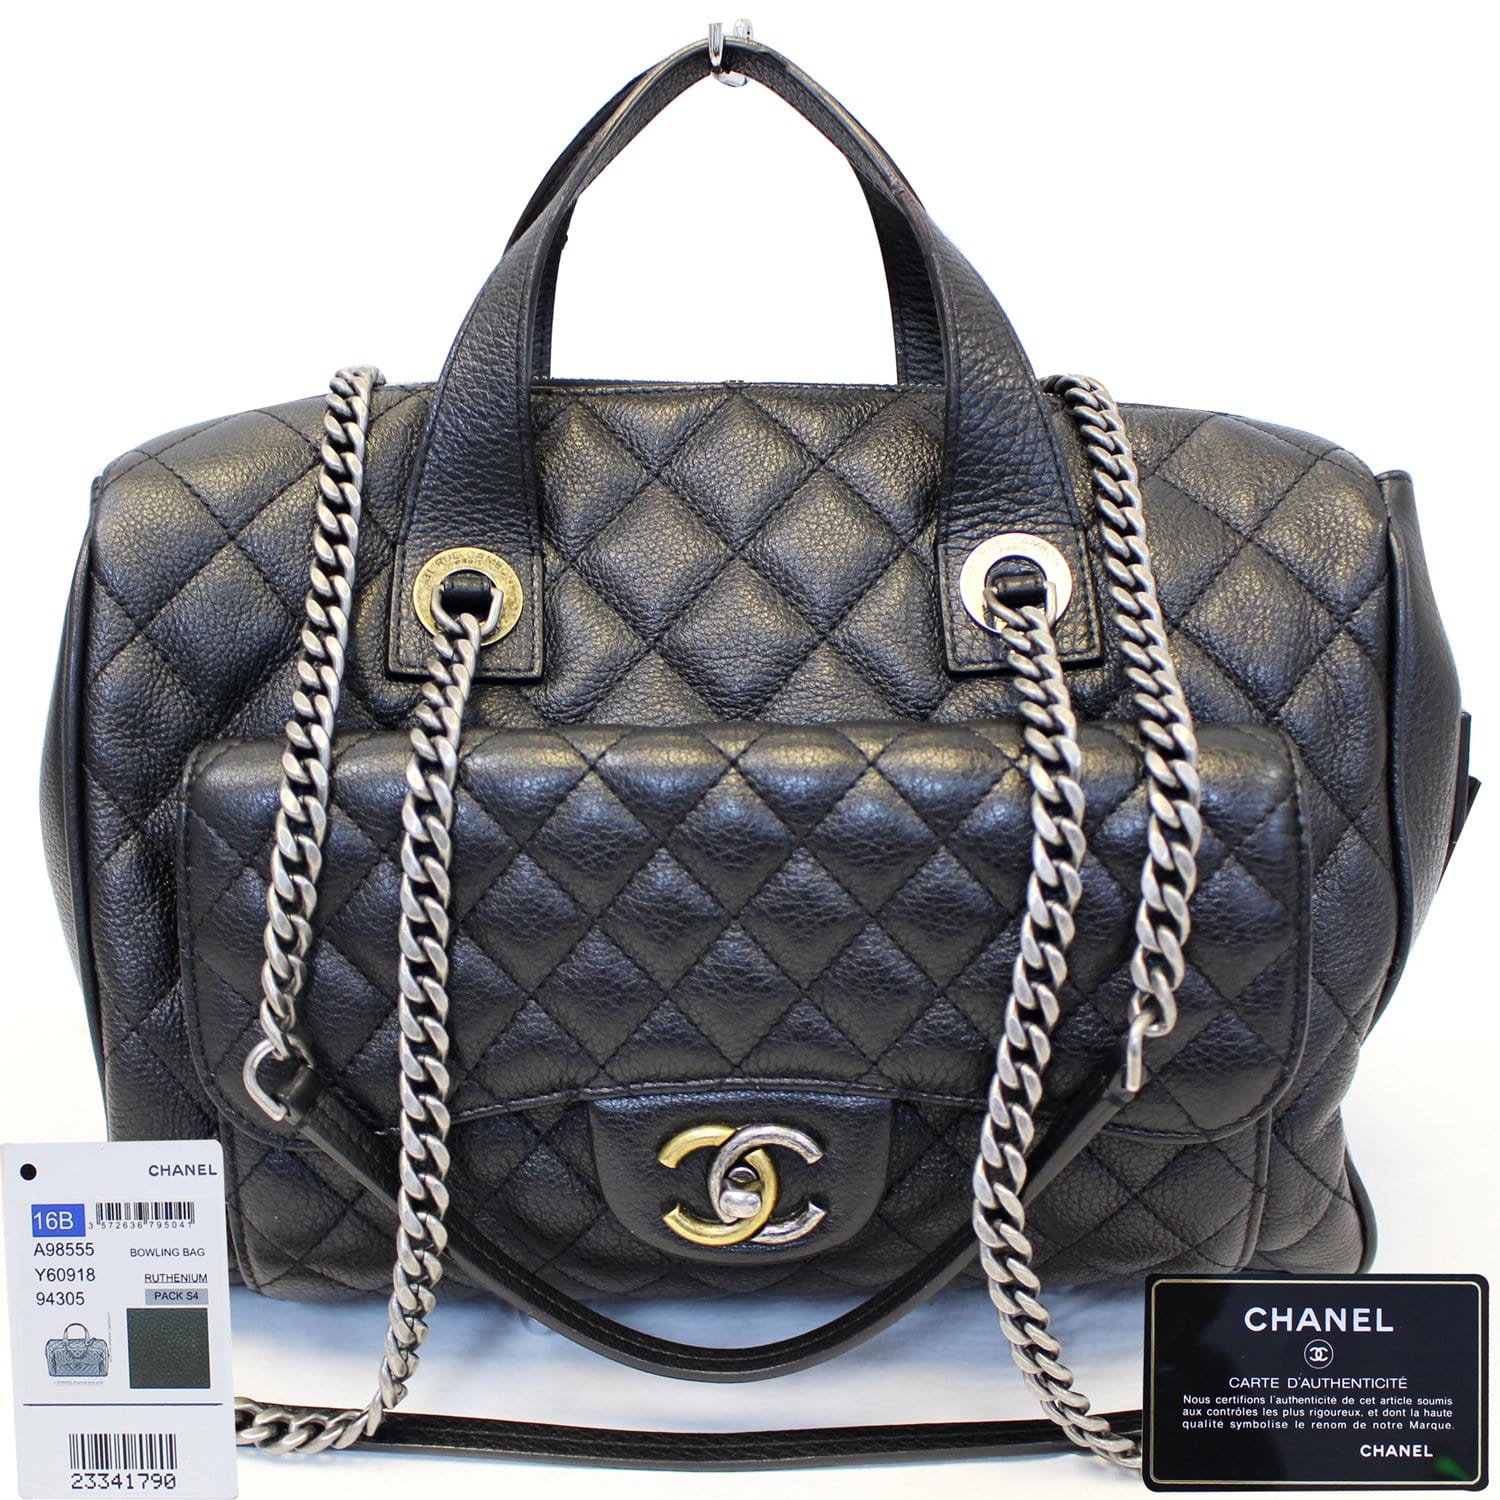 11902d425e19 CHANEL Metallic Grained Calfskin Quilted Leather Bowling Bag-US ...